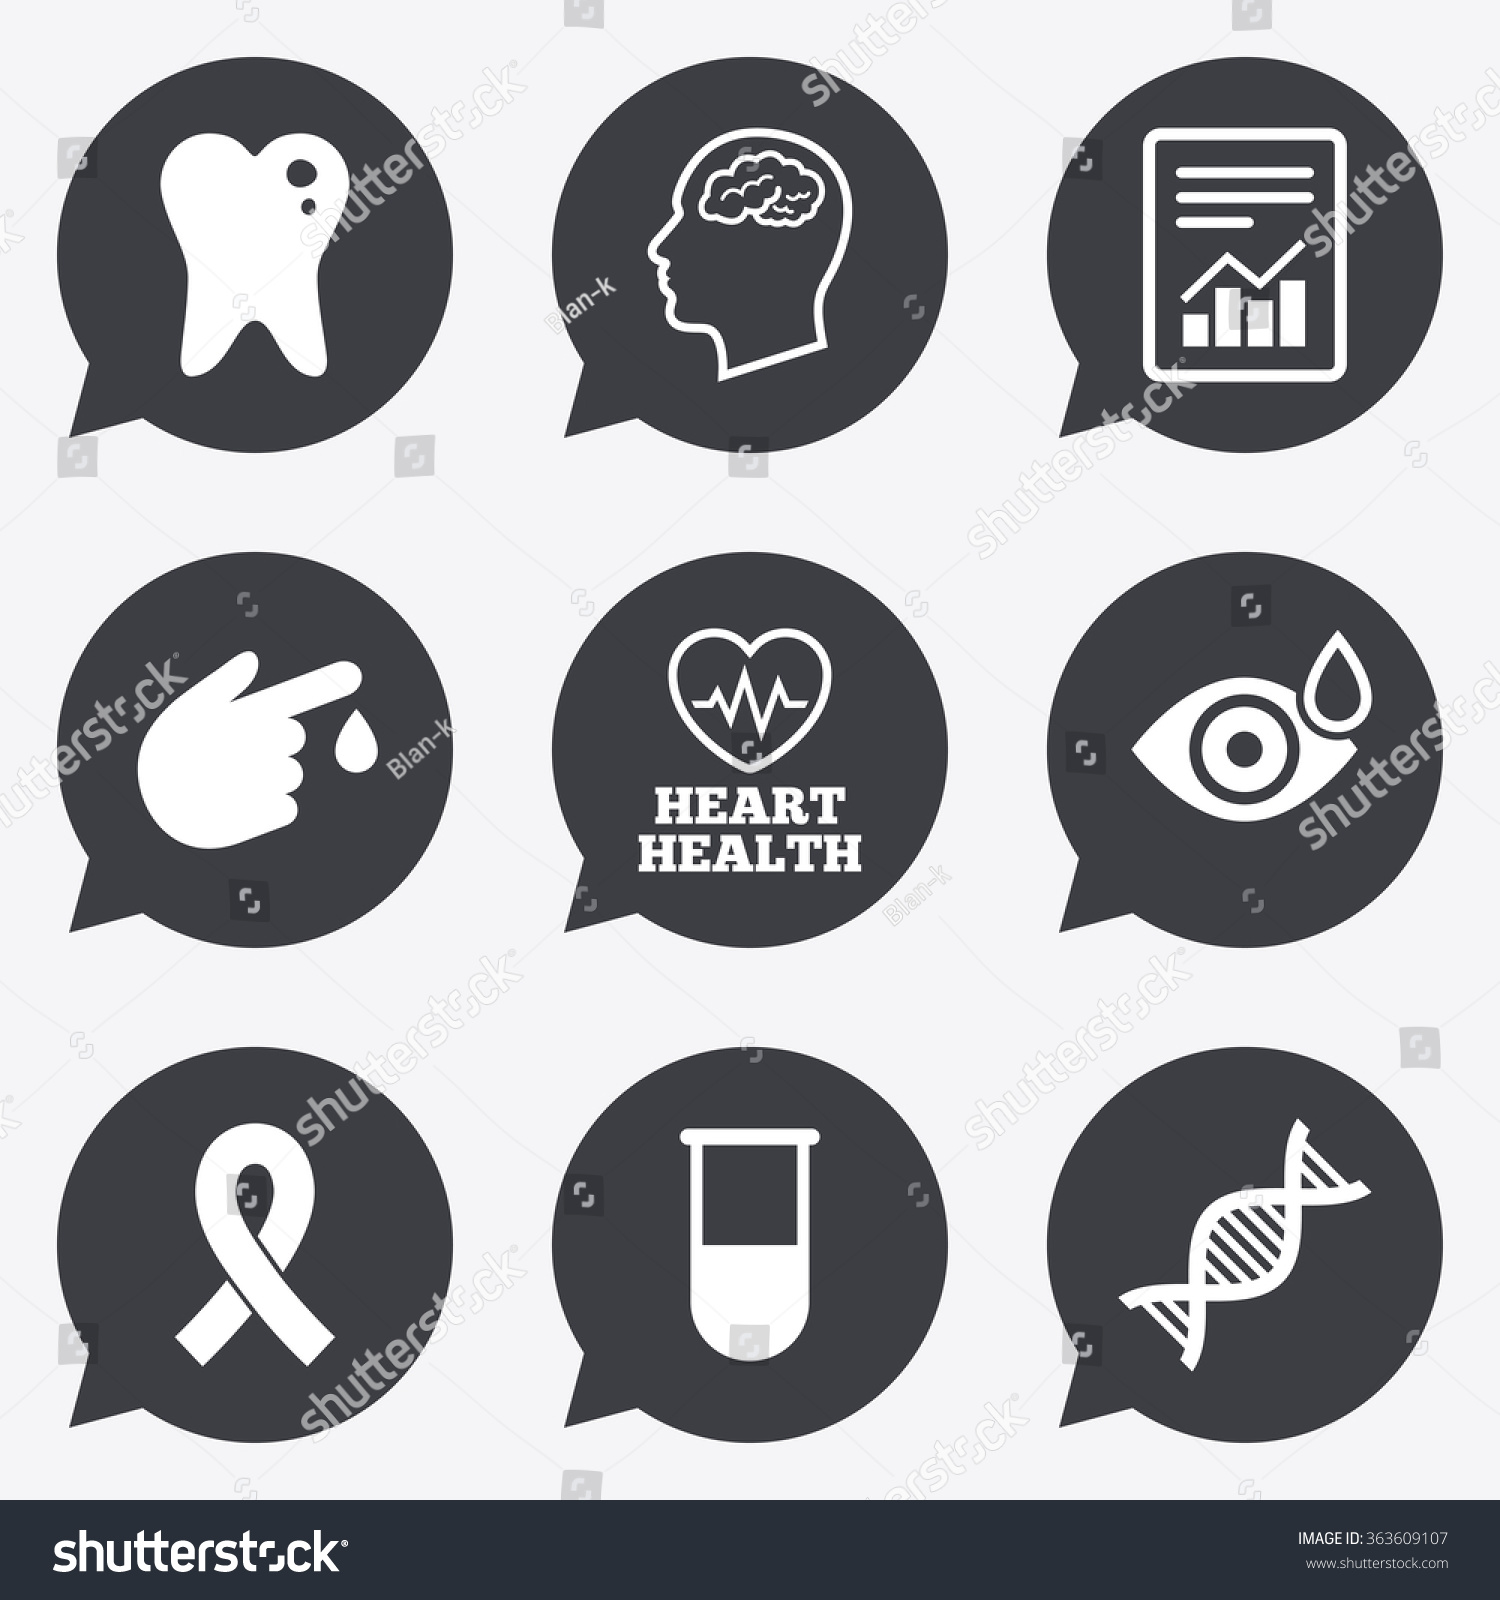 Medicine Medical Health Diagnosis Icons Blood Stock Illustration